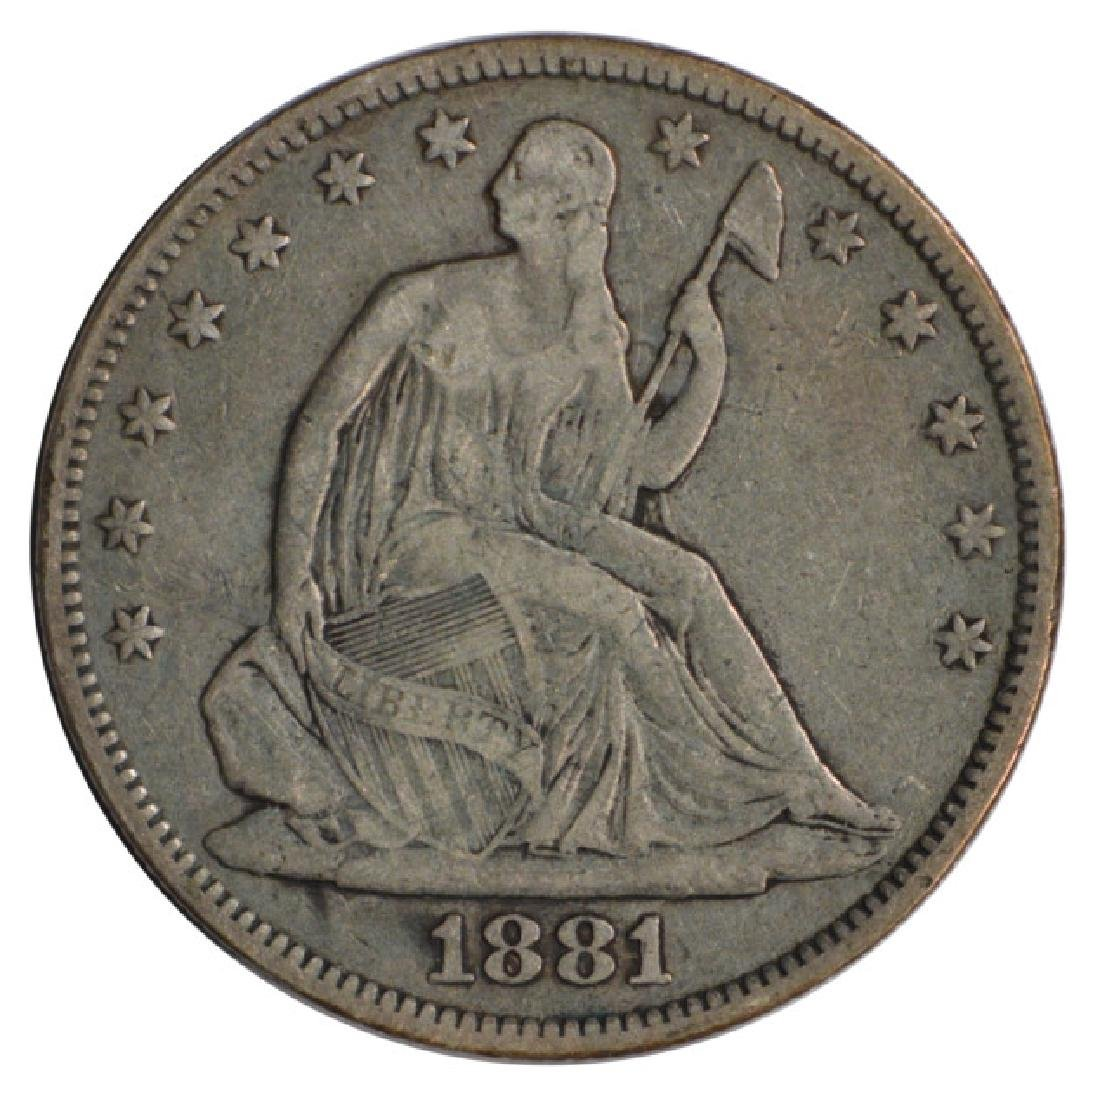 1881 Seated Liberty Half Dollar Coin